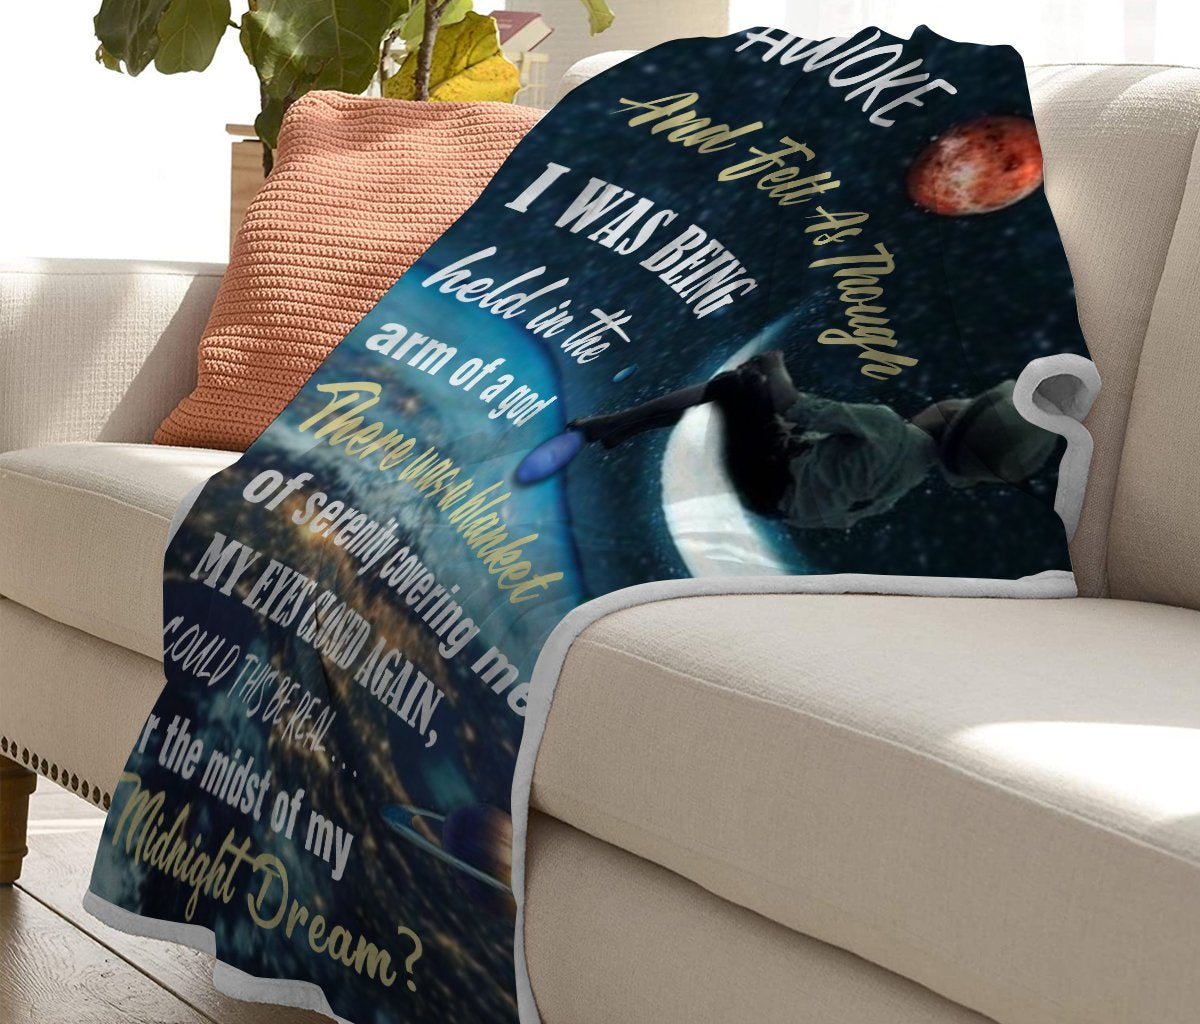 Christmas discount 50% - Baby you have a good dream at night - Blanket